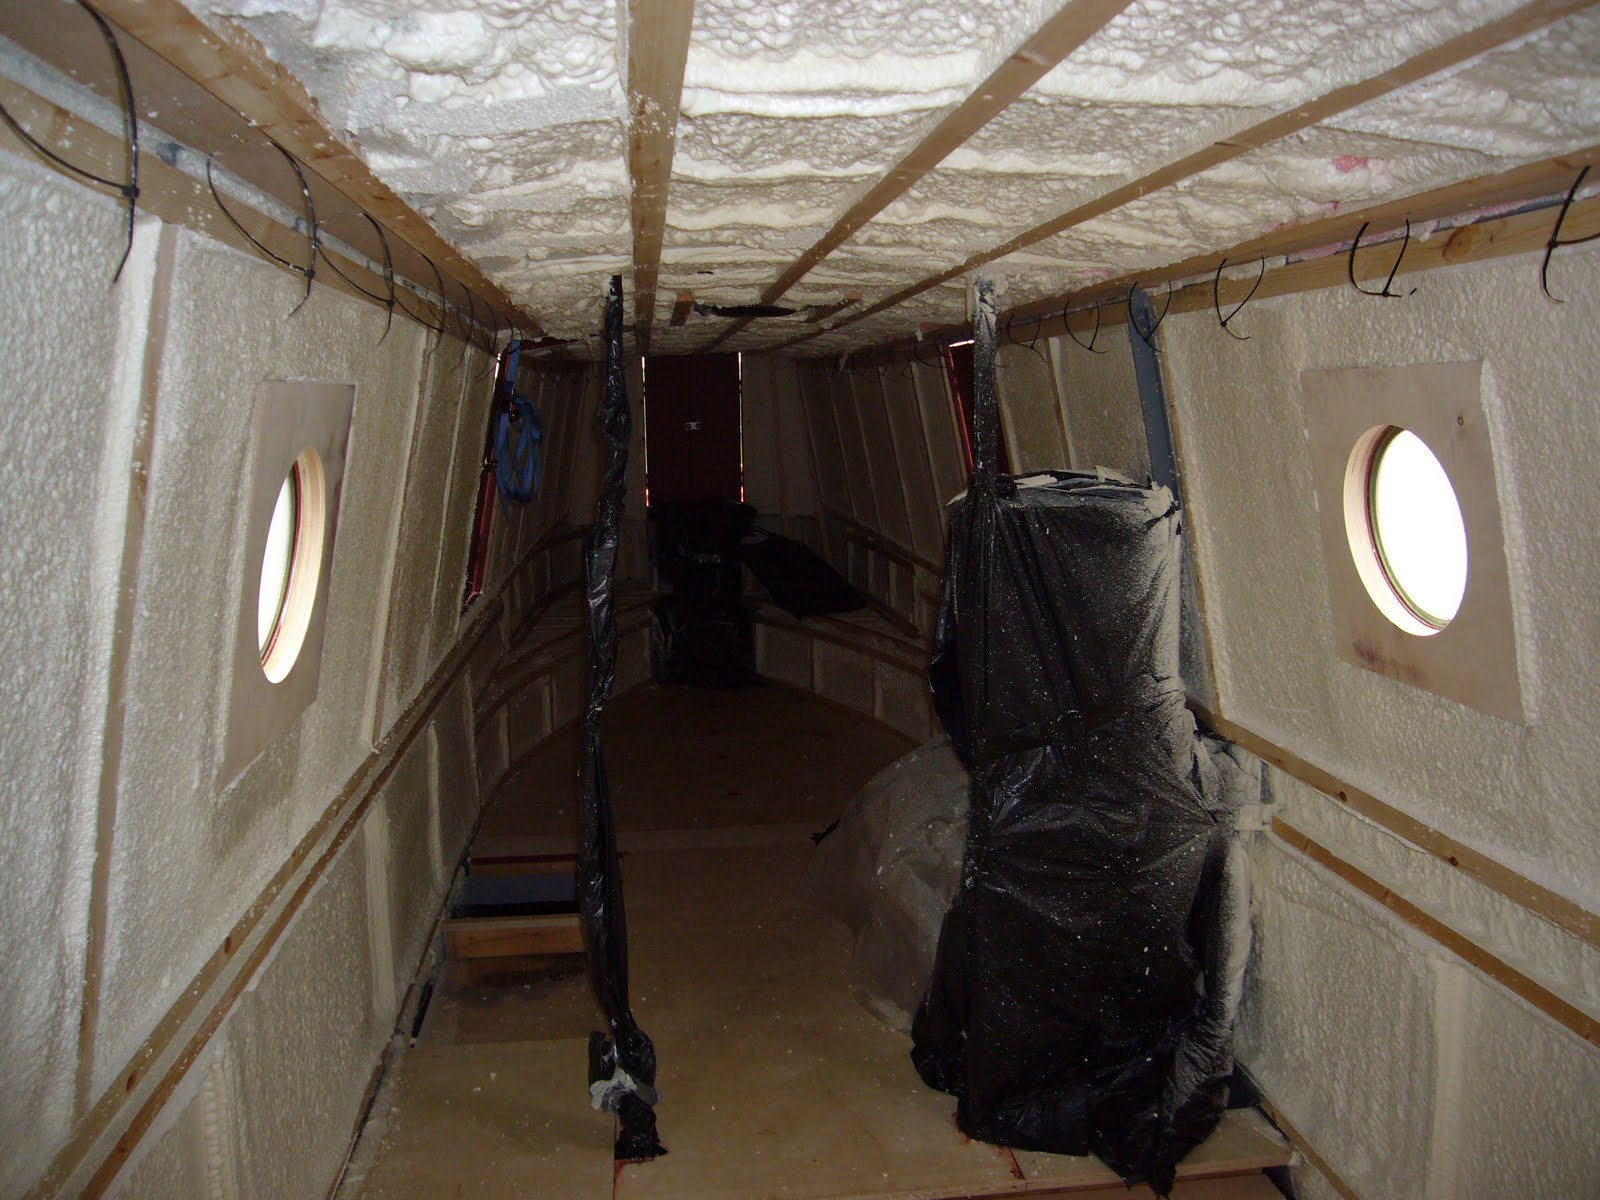 Marine spray foam insulation